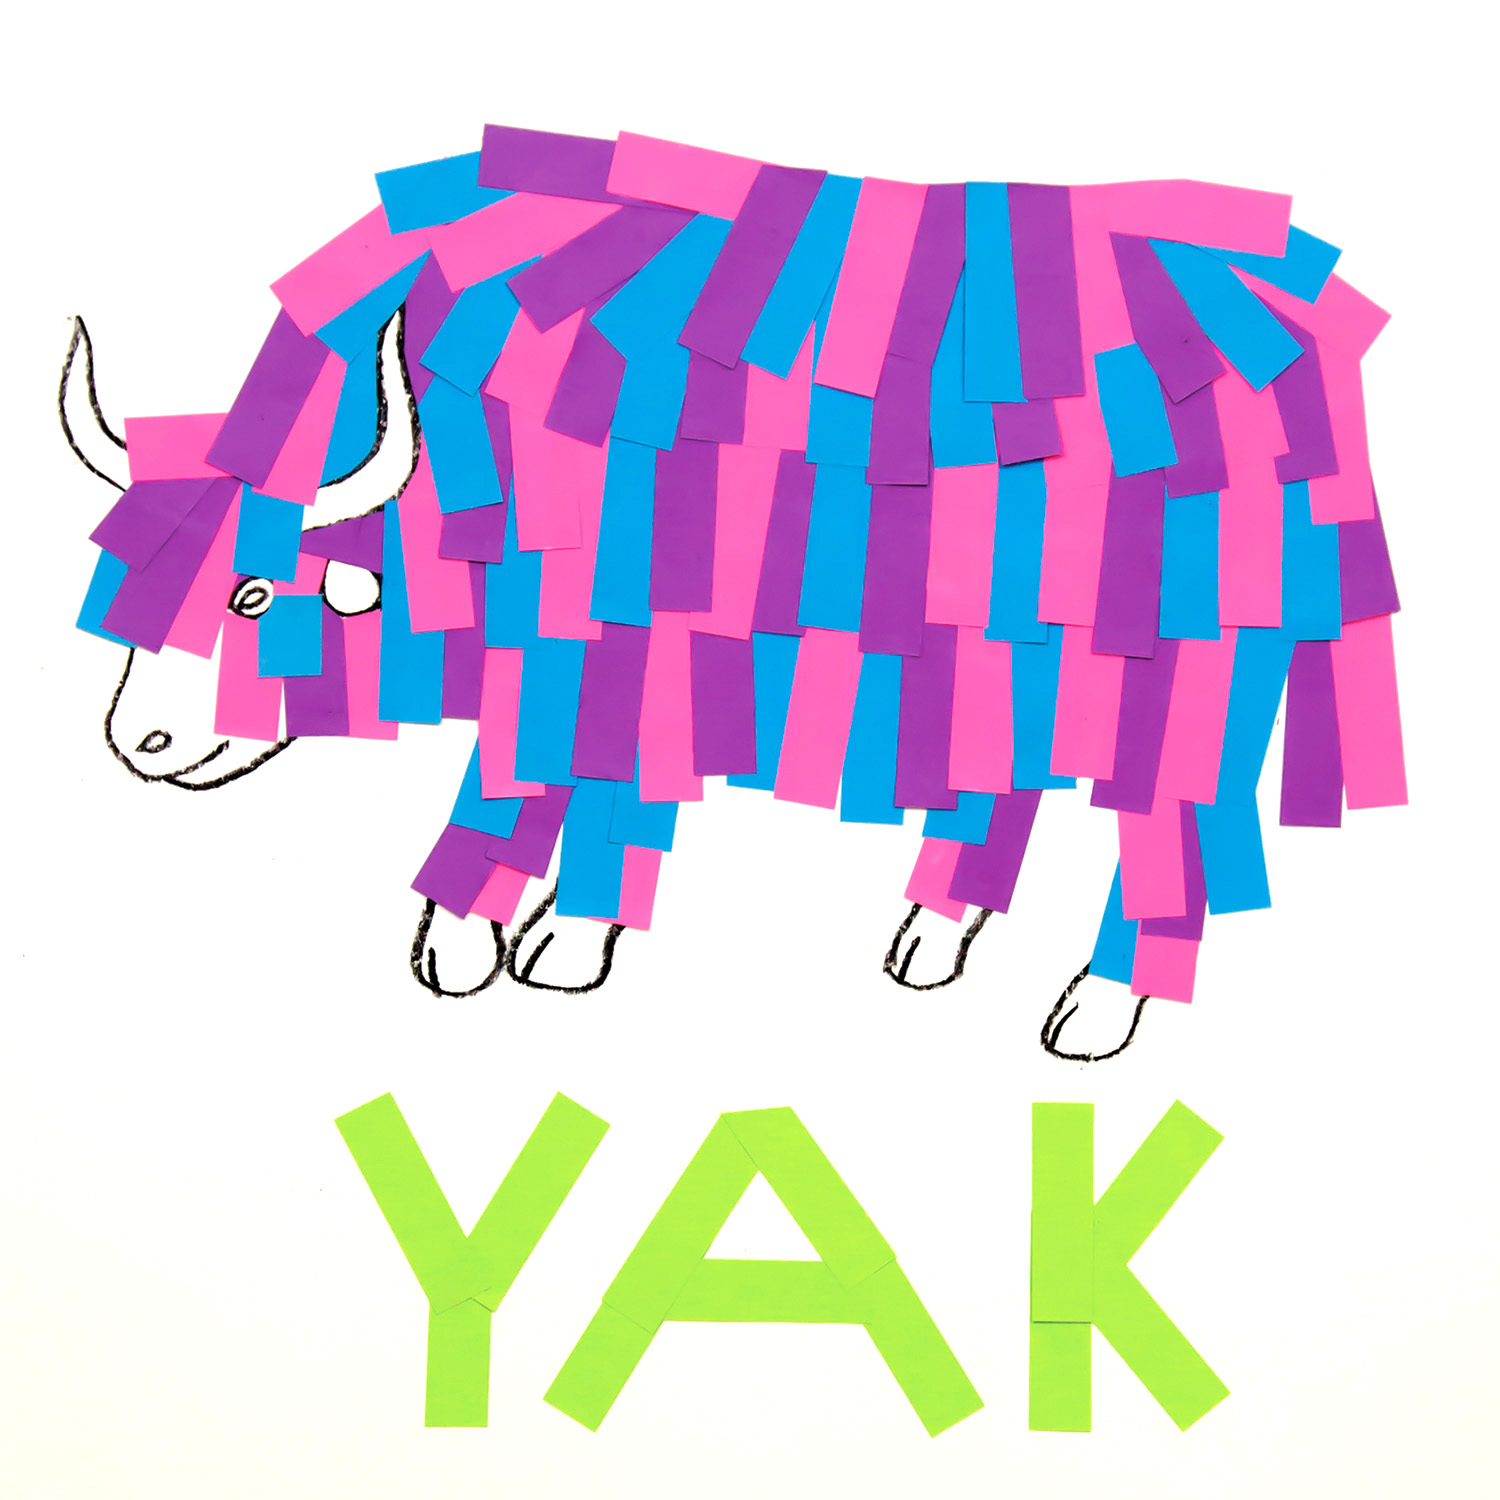 Yak  collage of sticky tabs, pencil